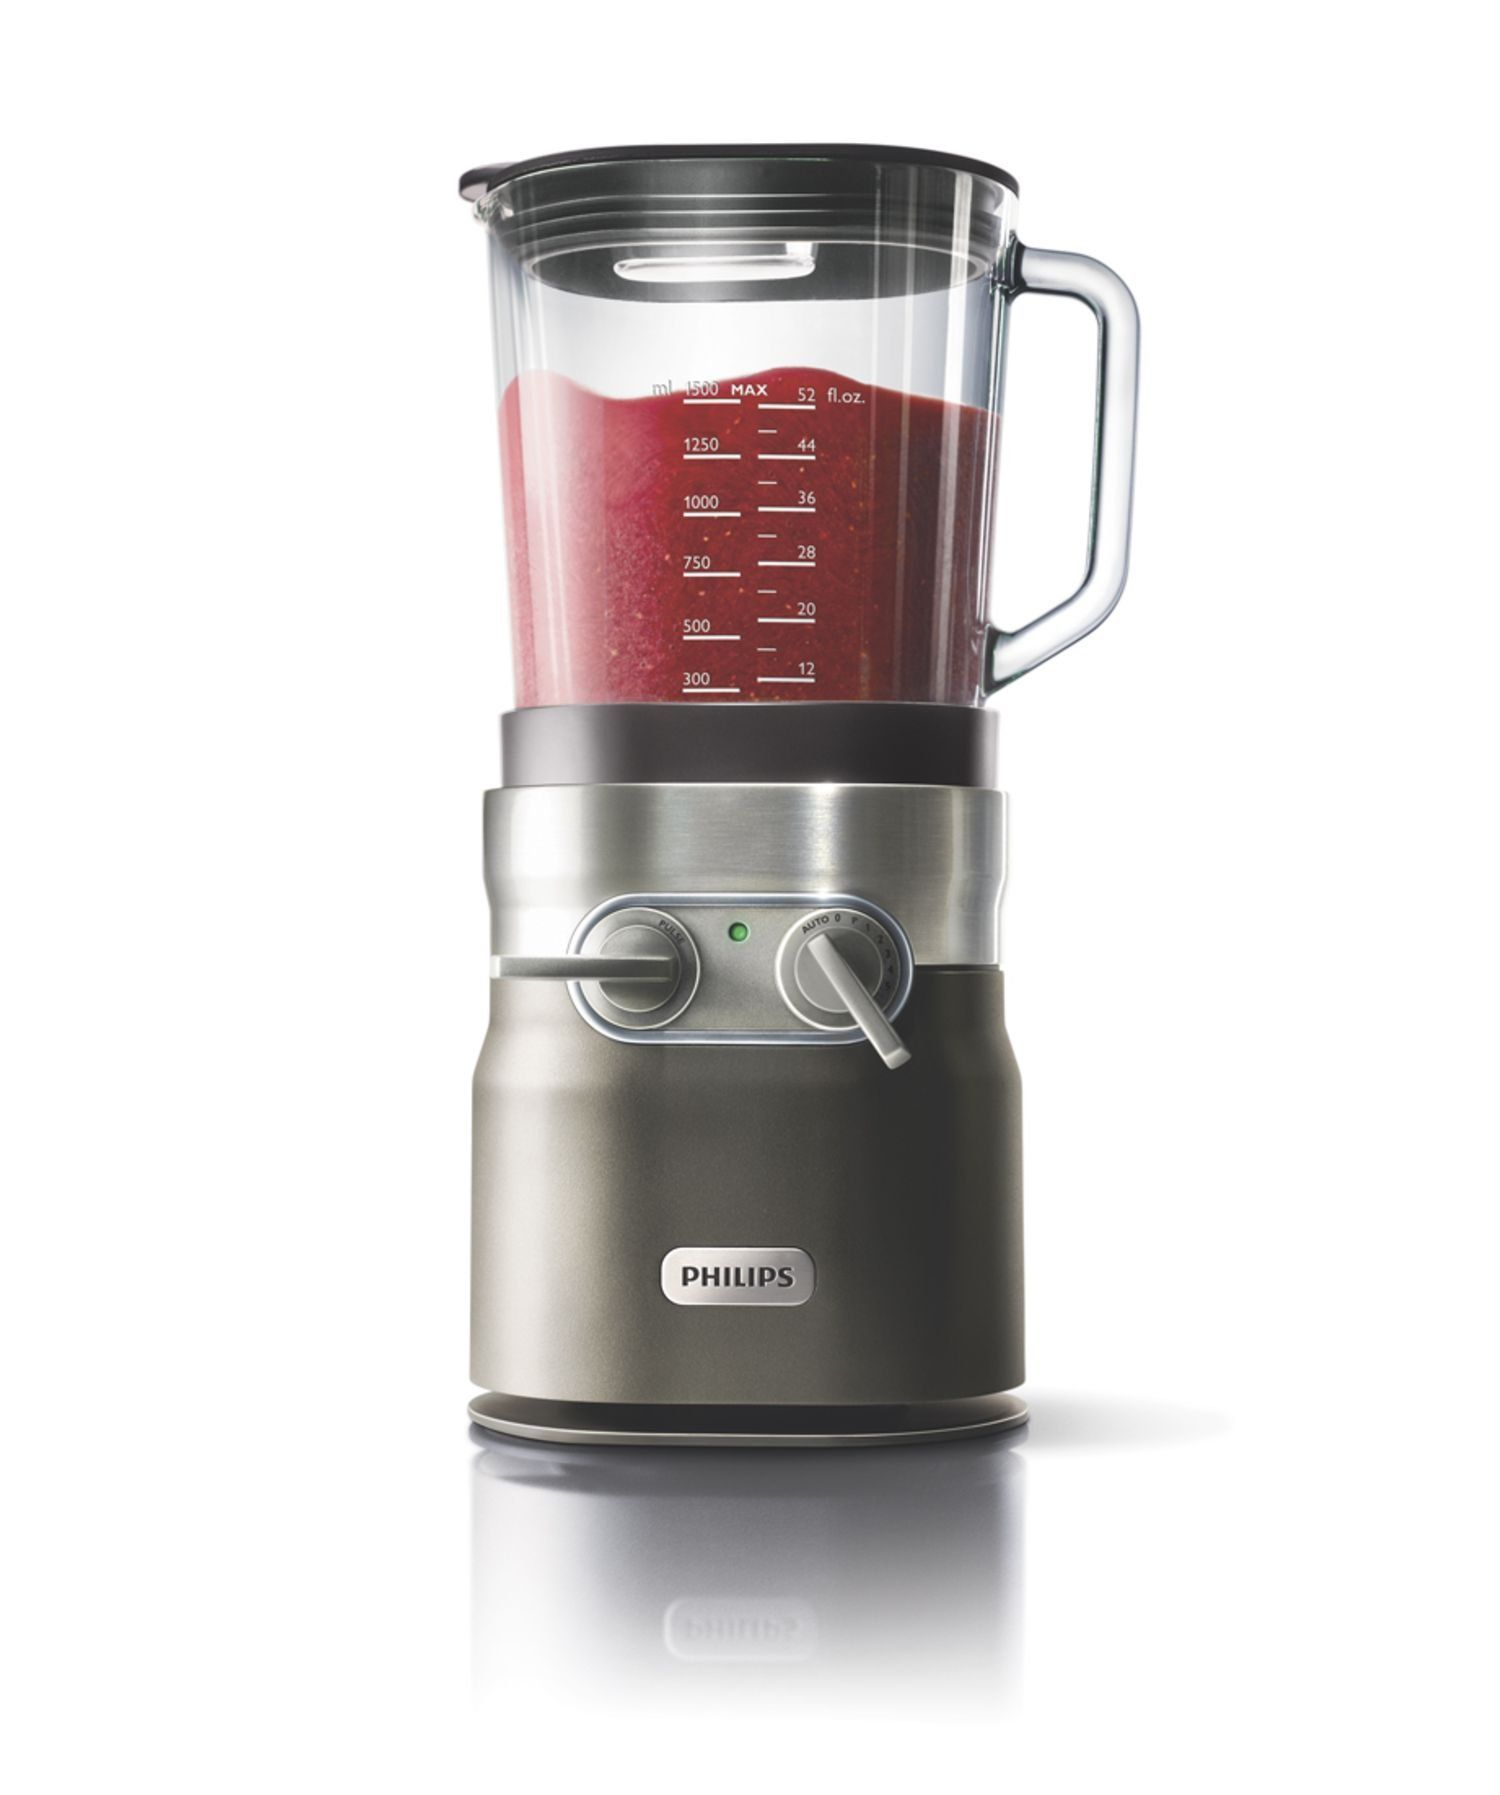 philips robust collection power blender blenders pinterest philips robust collection power blender